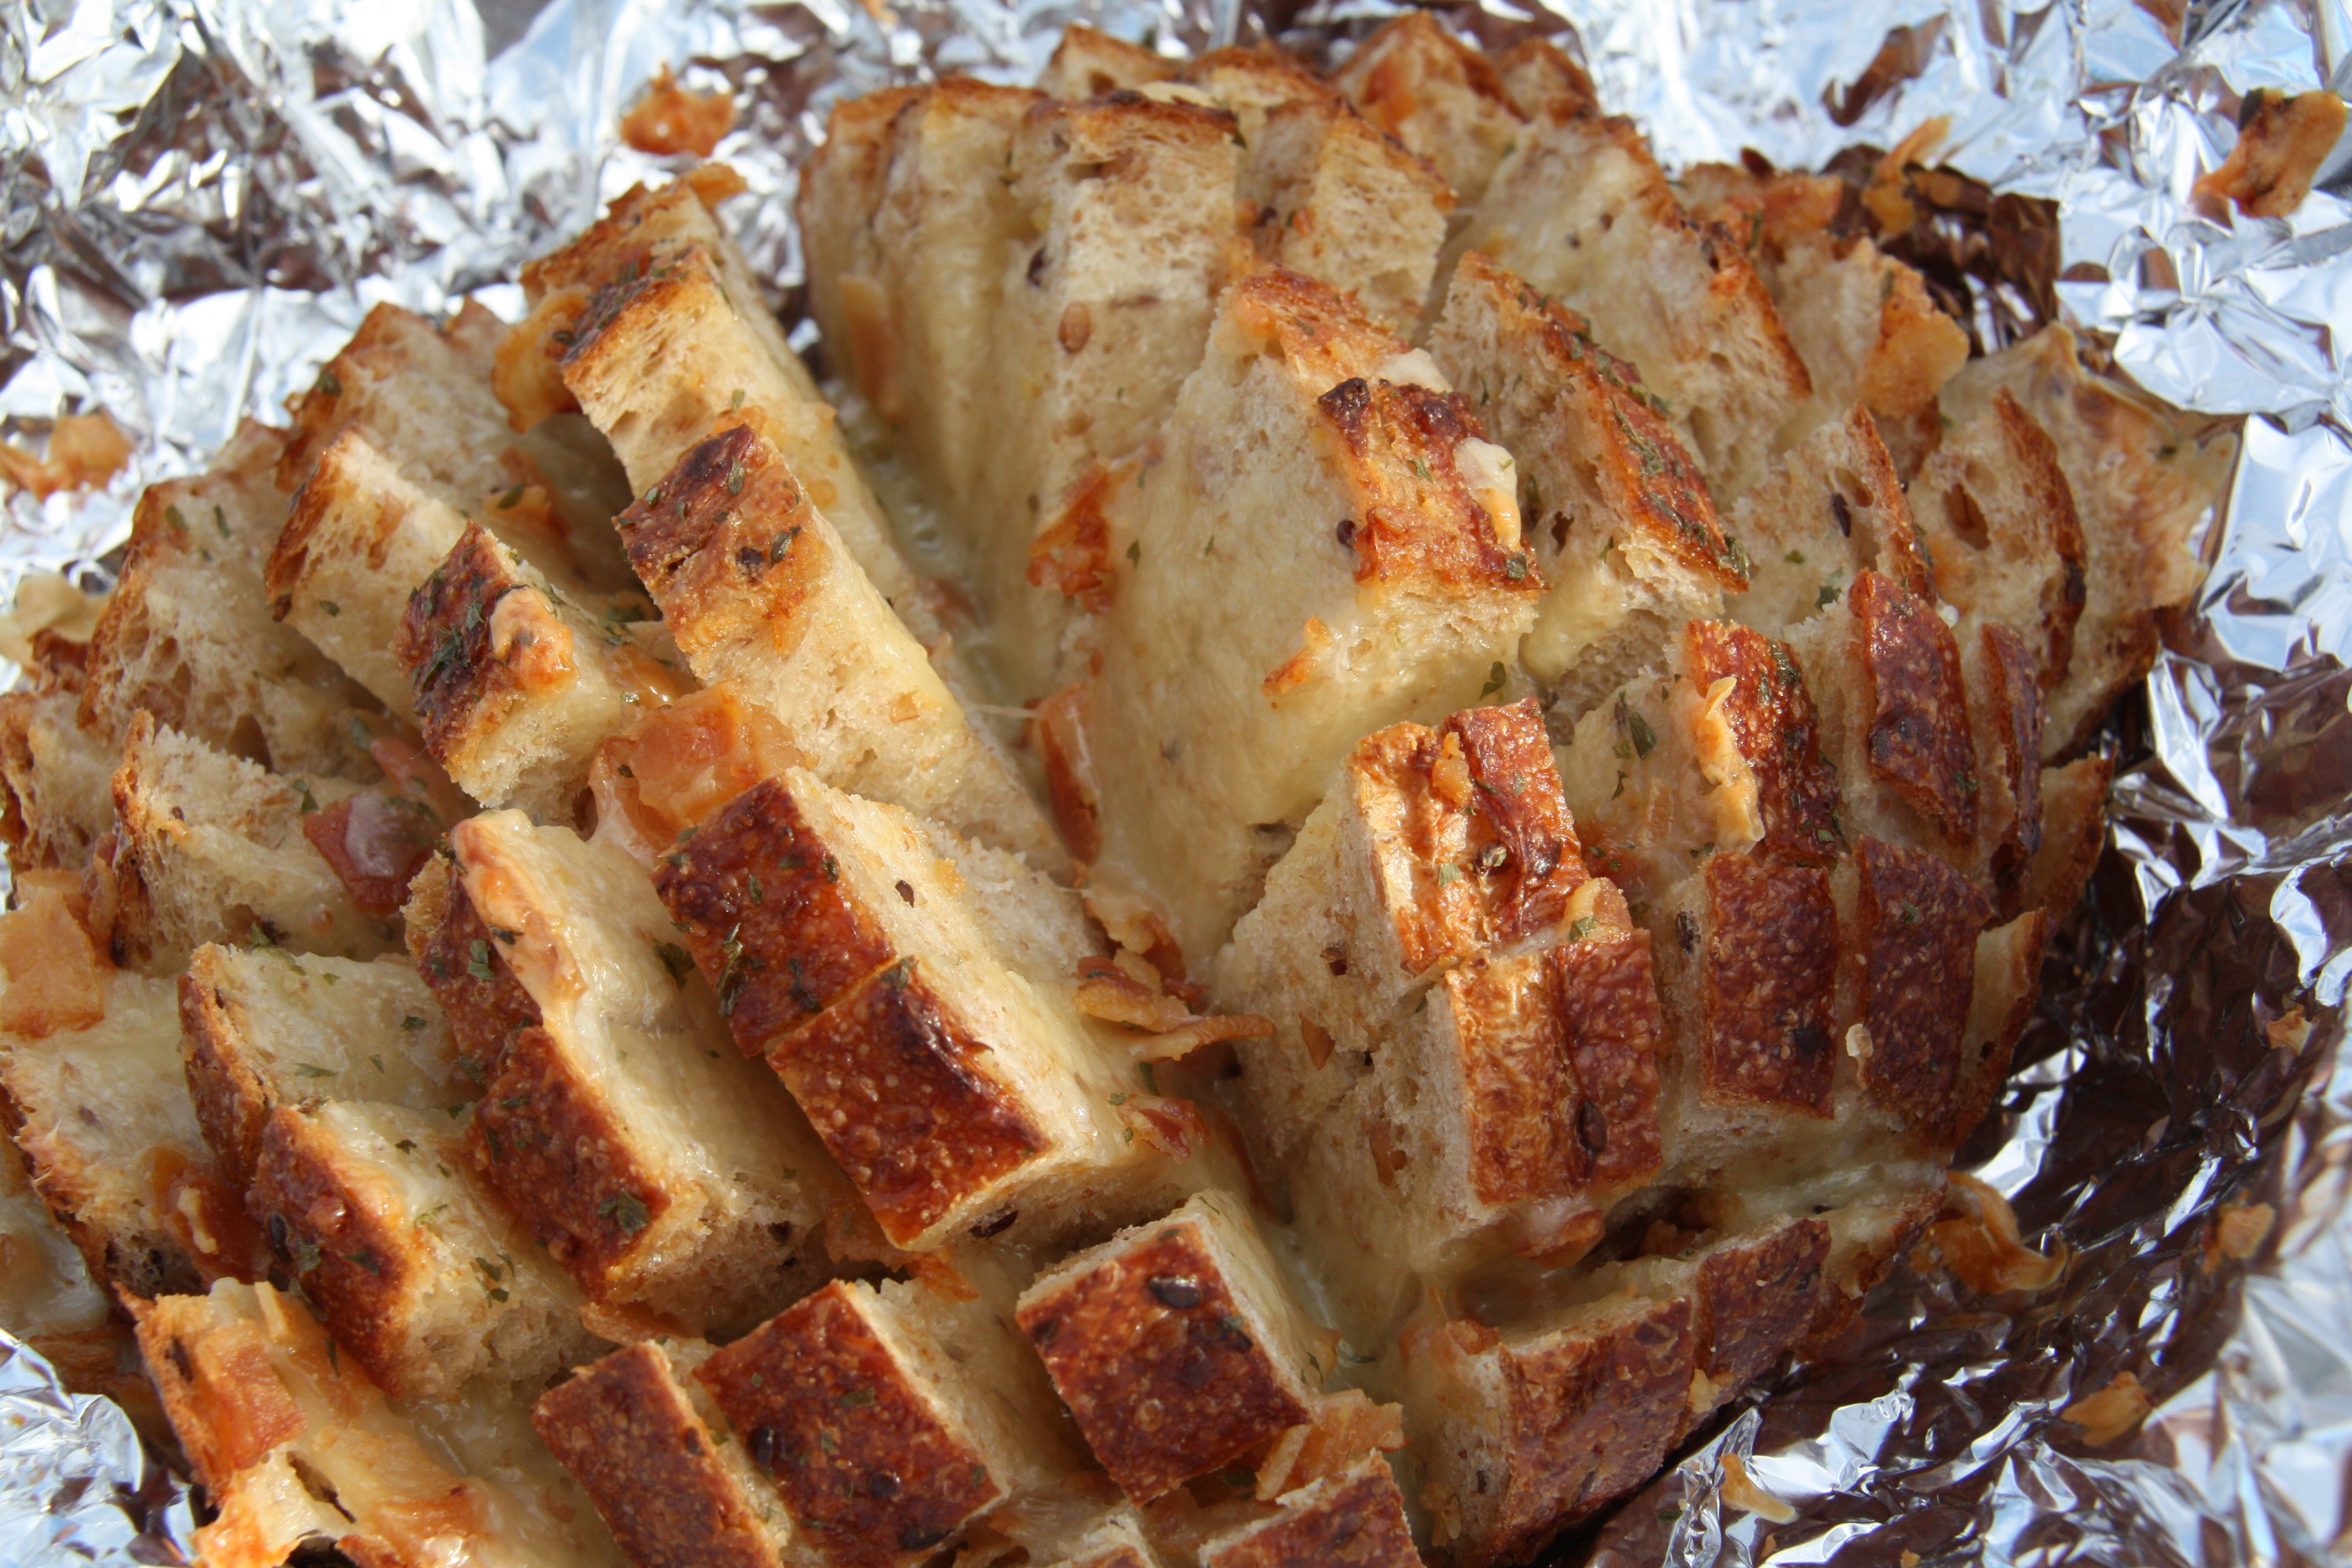 Bacon Cheese Stuffed Bread «Anne Jisca's Healthy Pursuits Anne Jisca ...